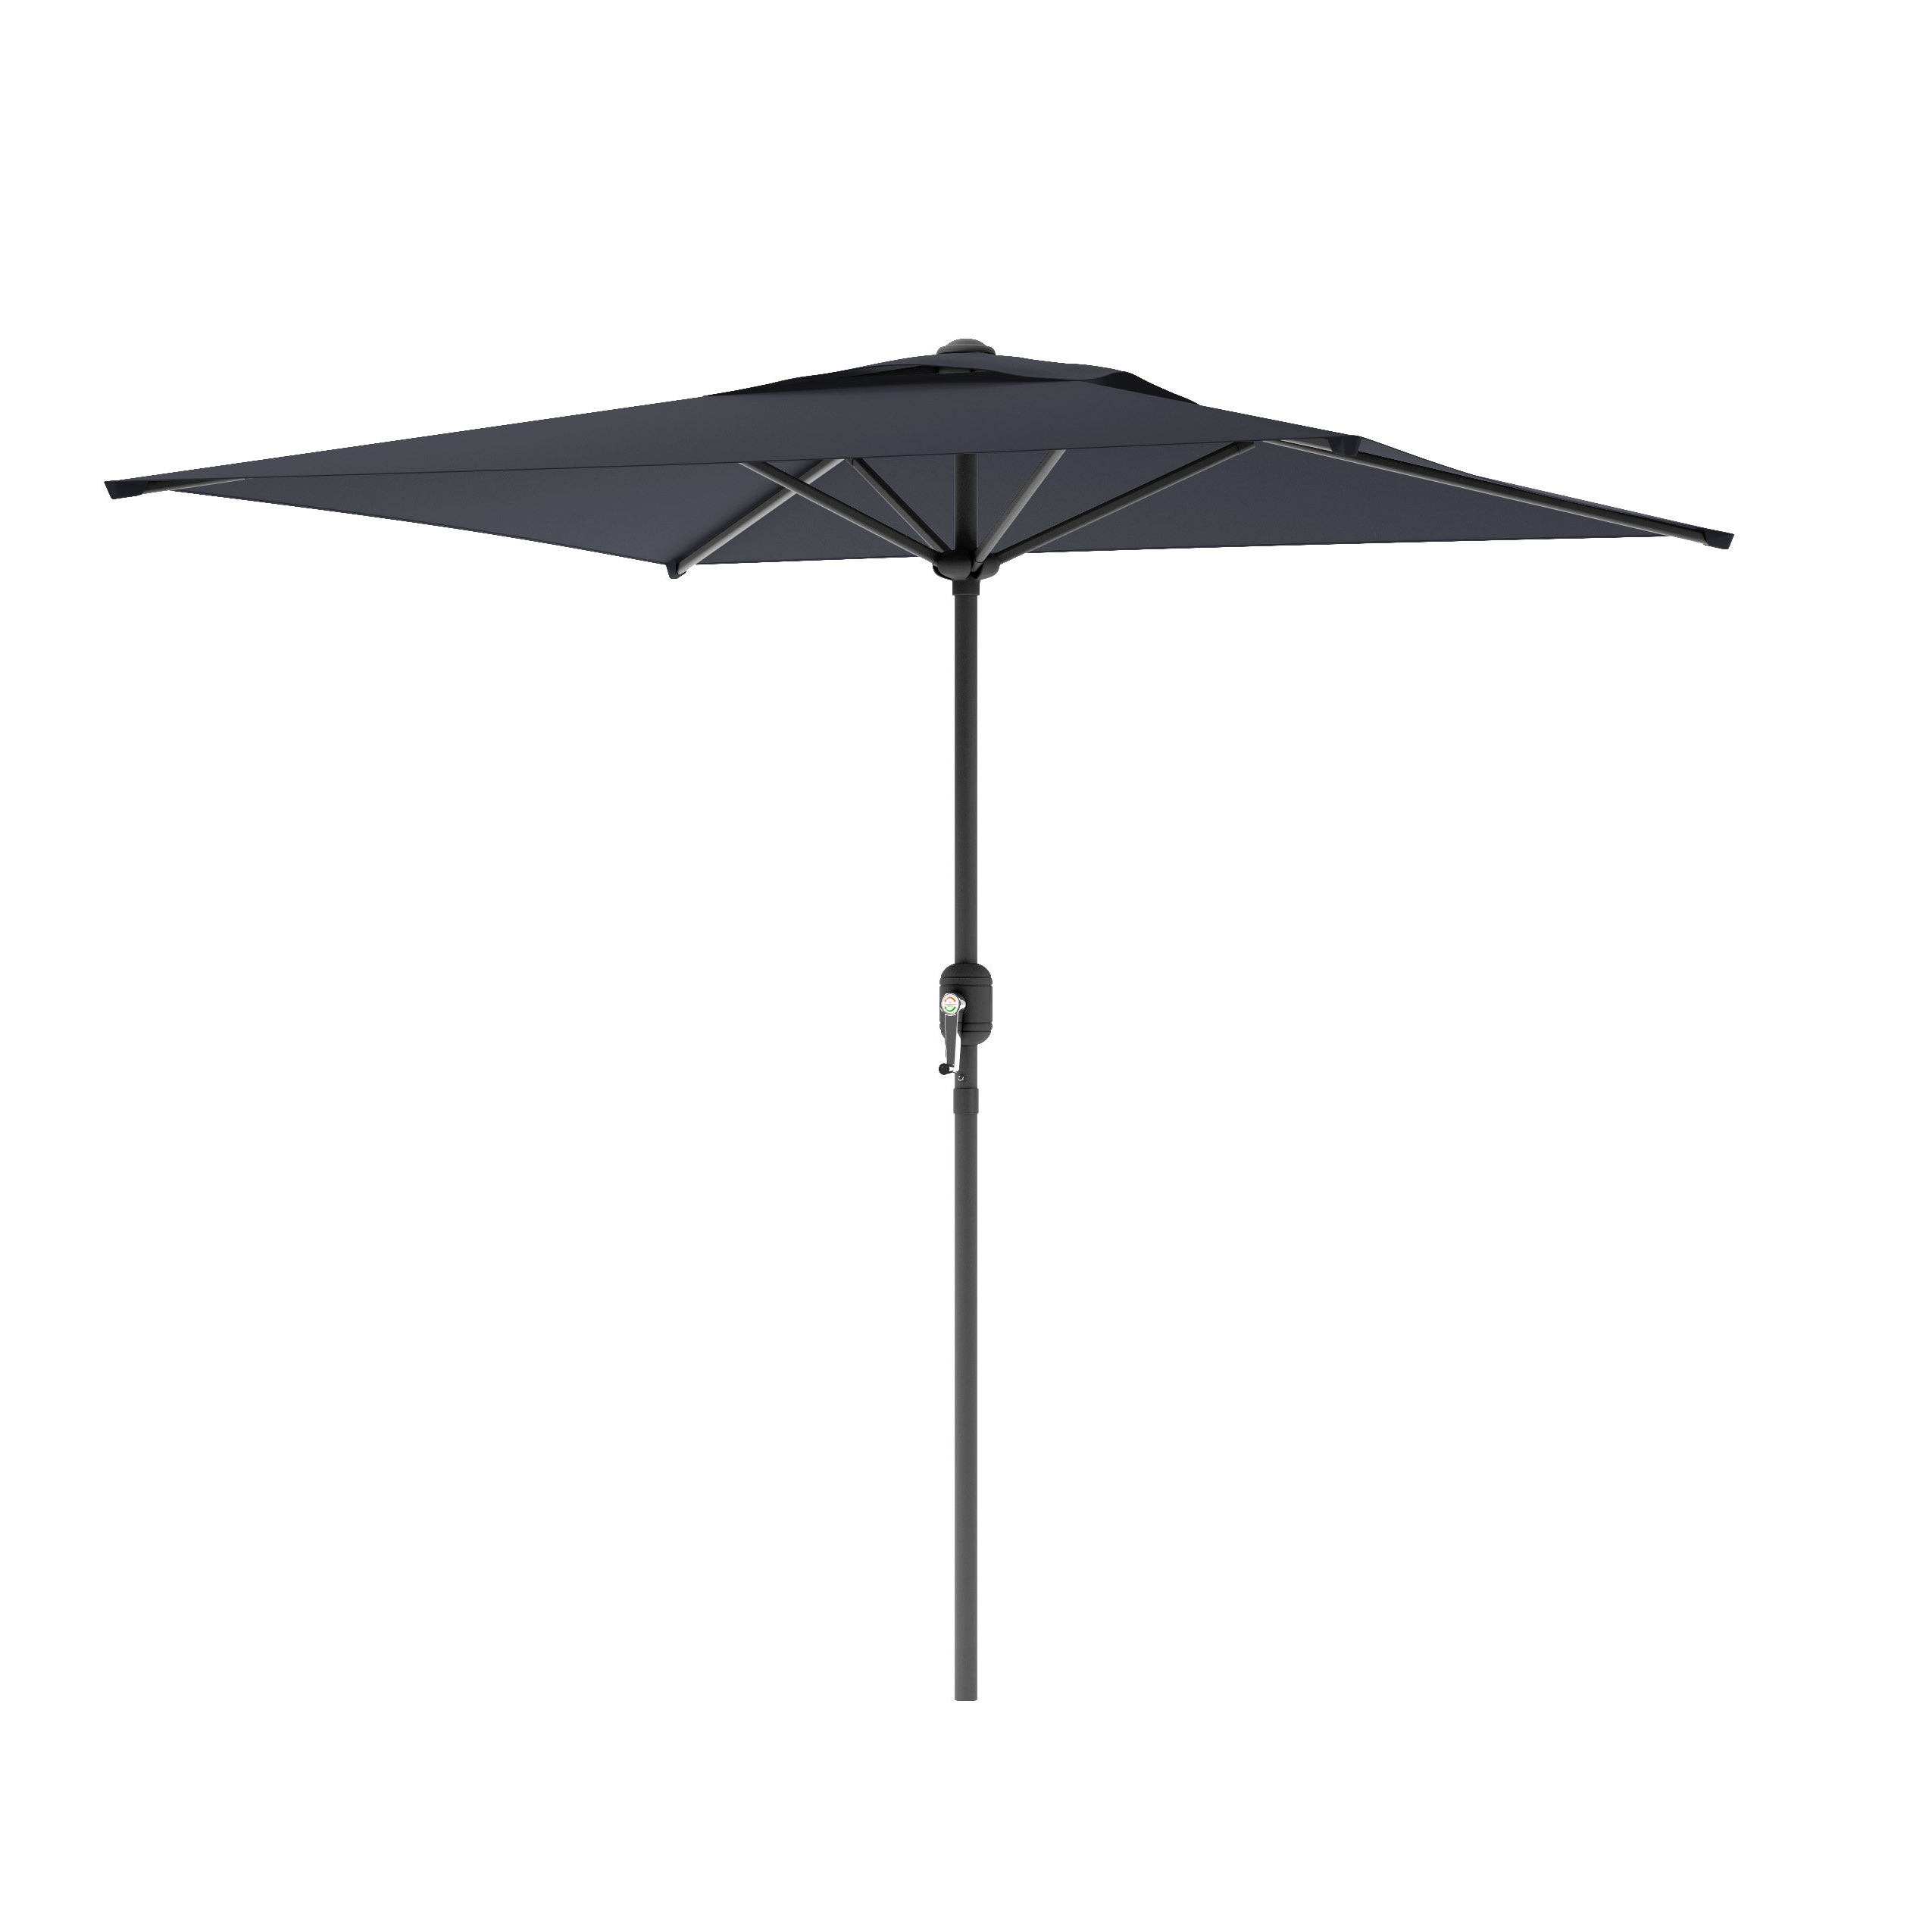 Fashionable Bradford Patio Market Umbrellas With Crowborough 9' Square Market Umbrella (View 11 of 20)